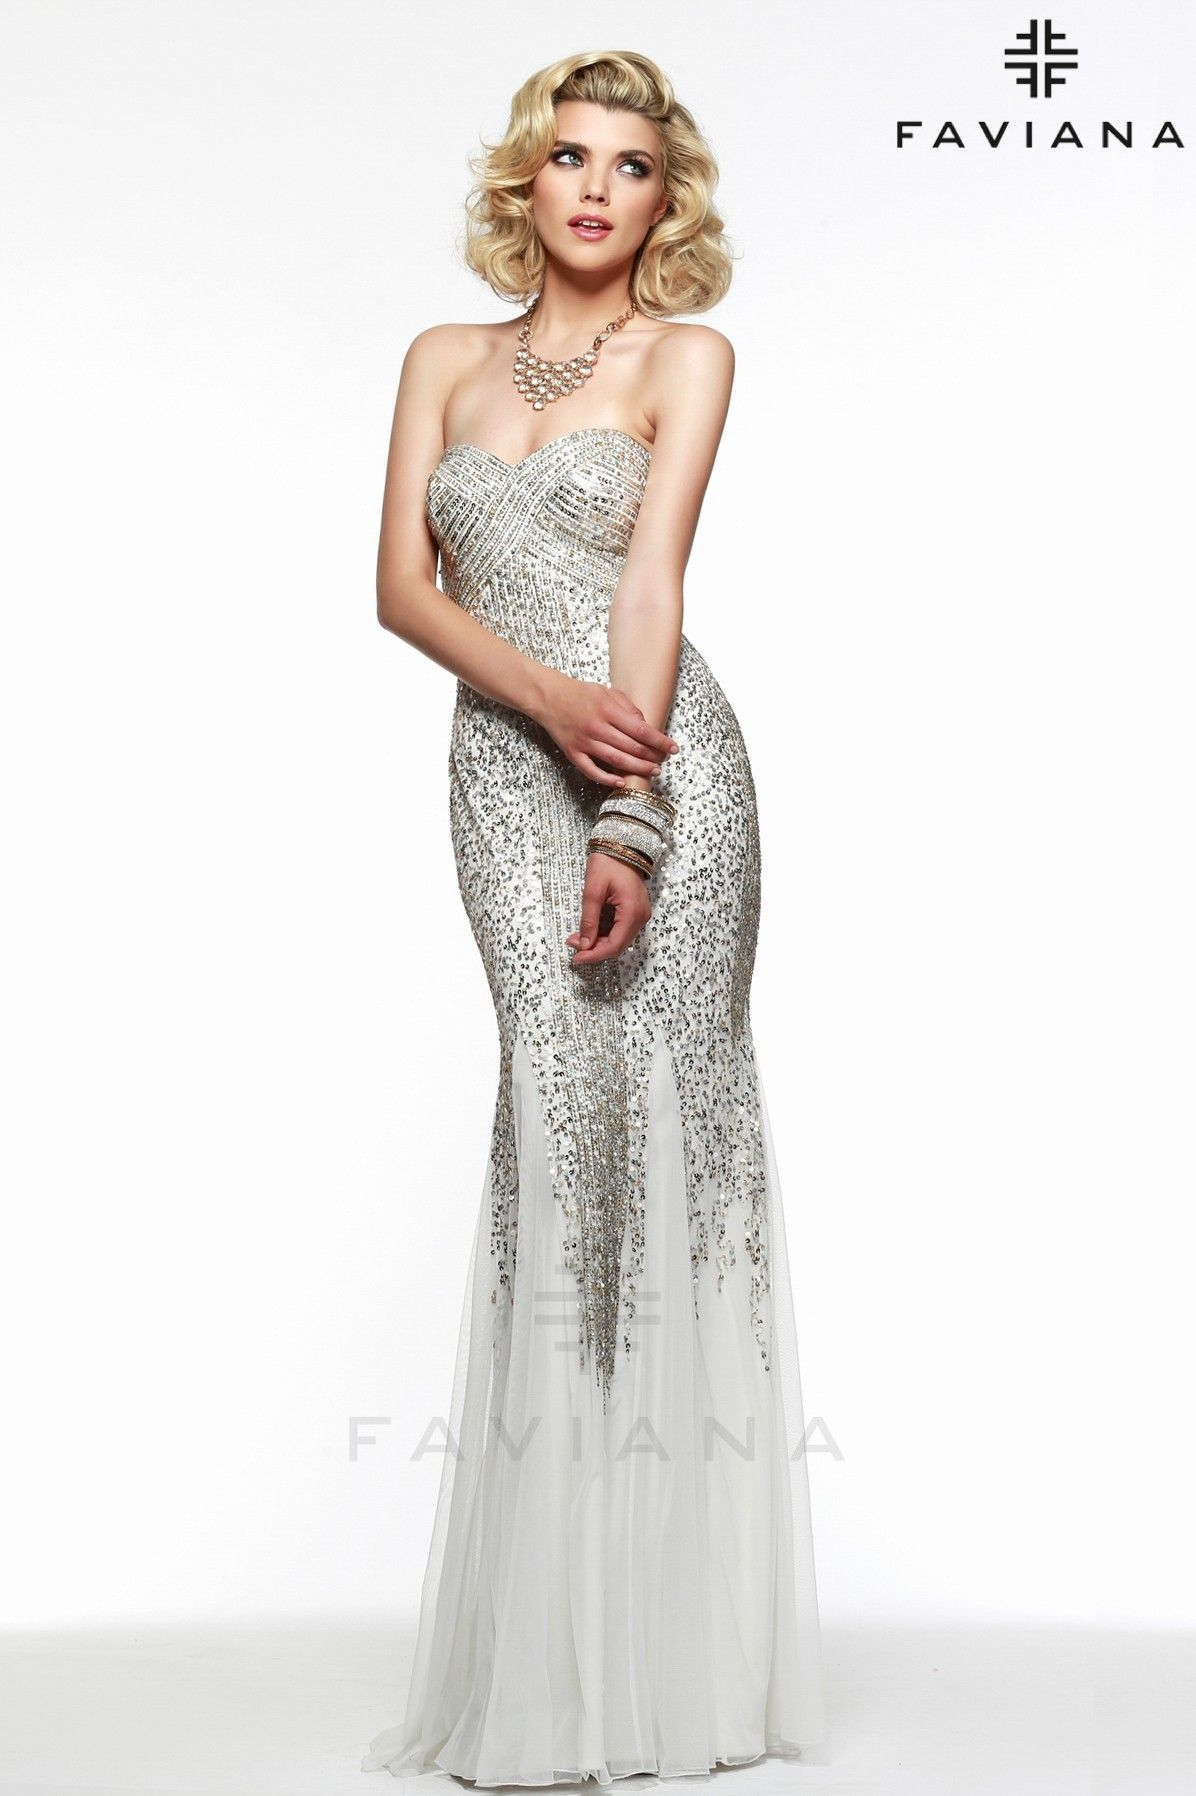 S7567 Ivory/Gold Bead Detailing Prom Dresses 2015